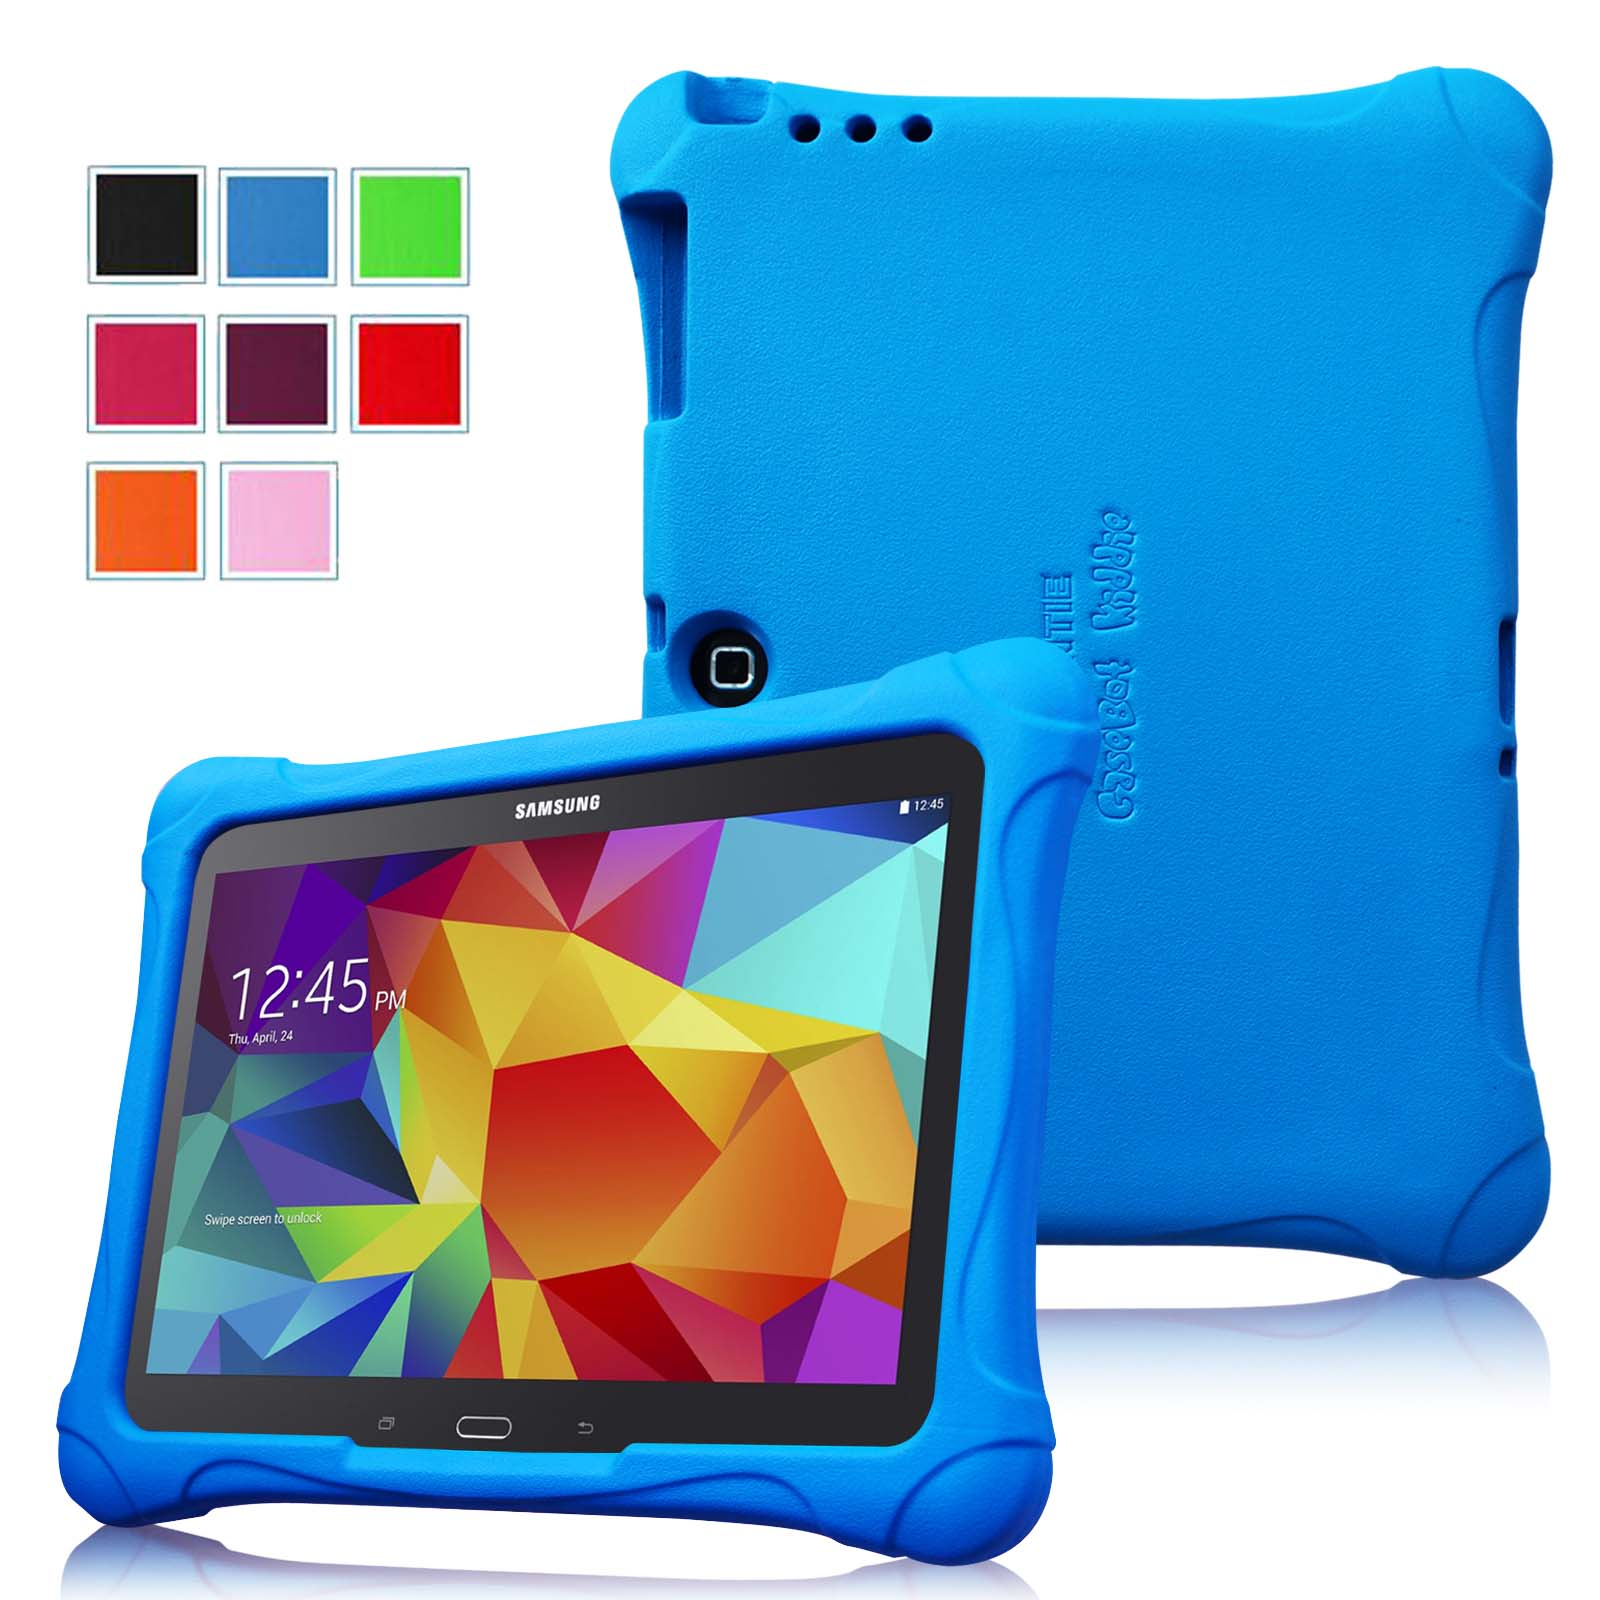 Fintie Samsung Galaxy Tab 3 10.1 and Tab 4 10.1 inch Tablet Kiddie Case - Ultra Lightweight Shock Proof Cover, Blue